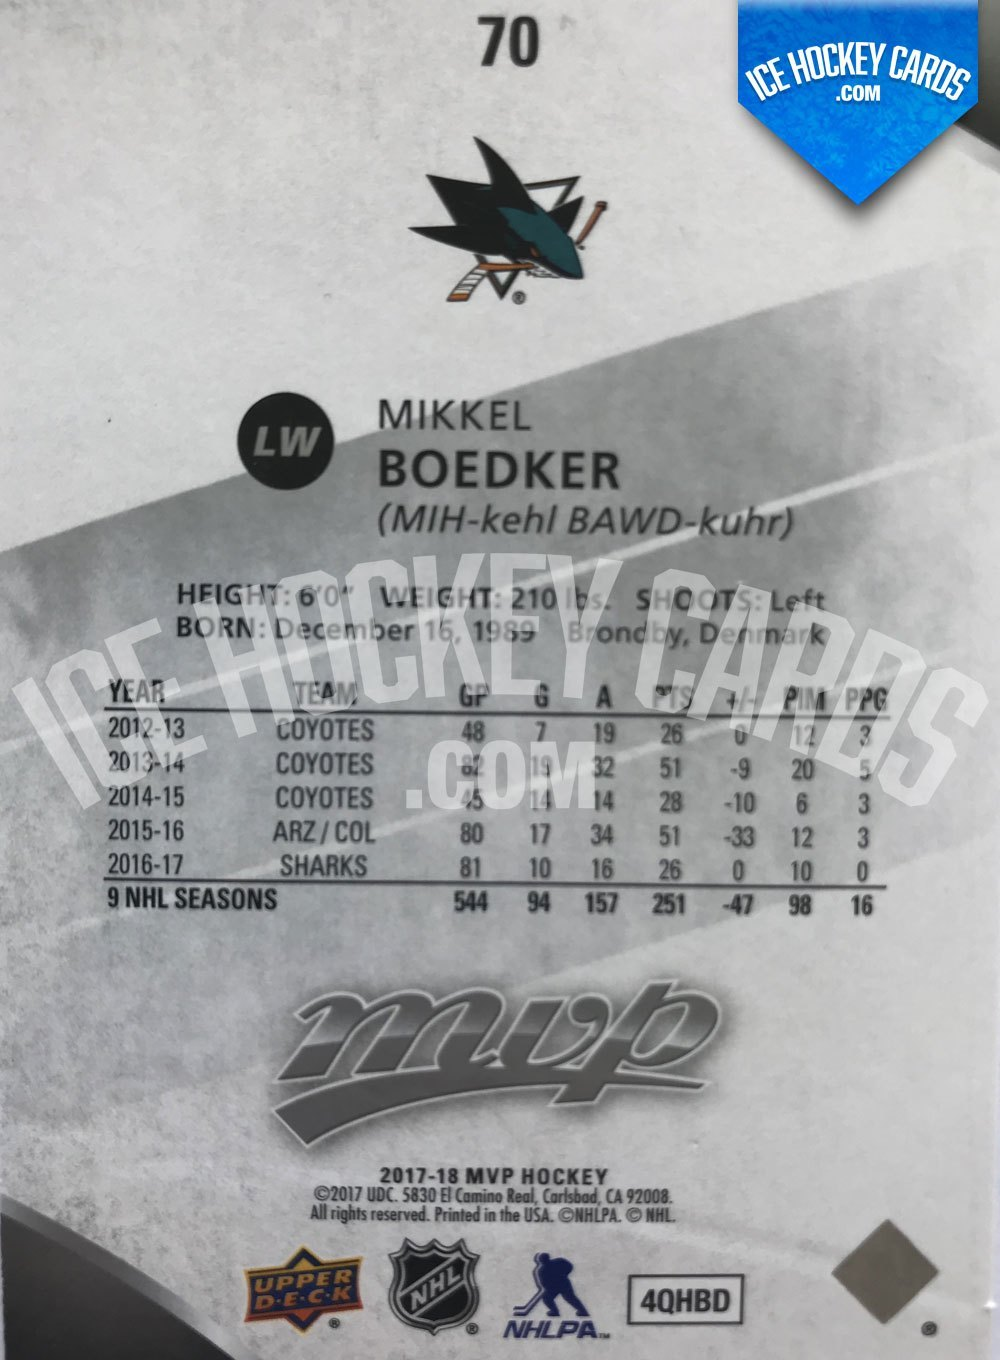 Upper Deck - MVP 17-18 - Mikkel Boedker MVP Scripts 6 of 25 RARE back